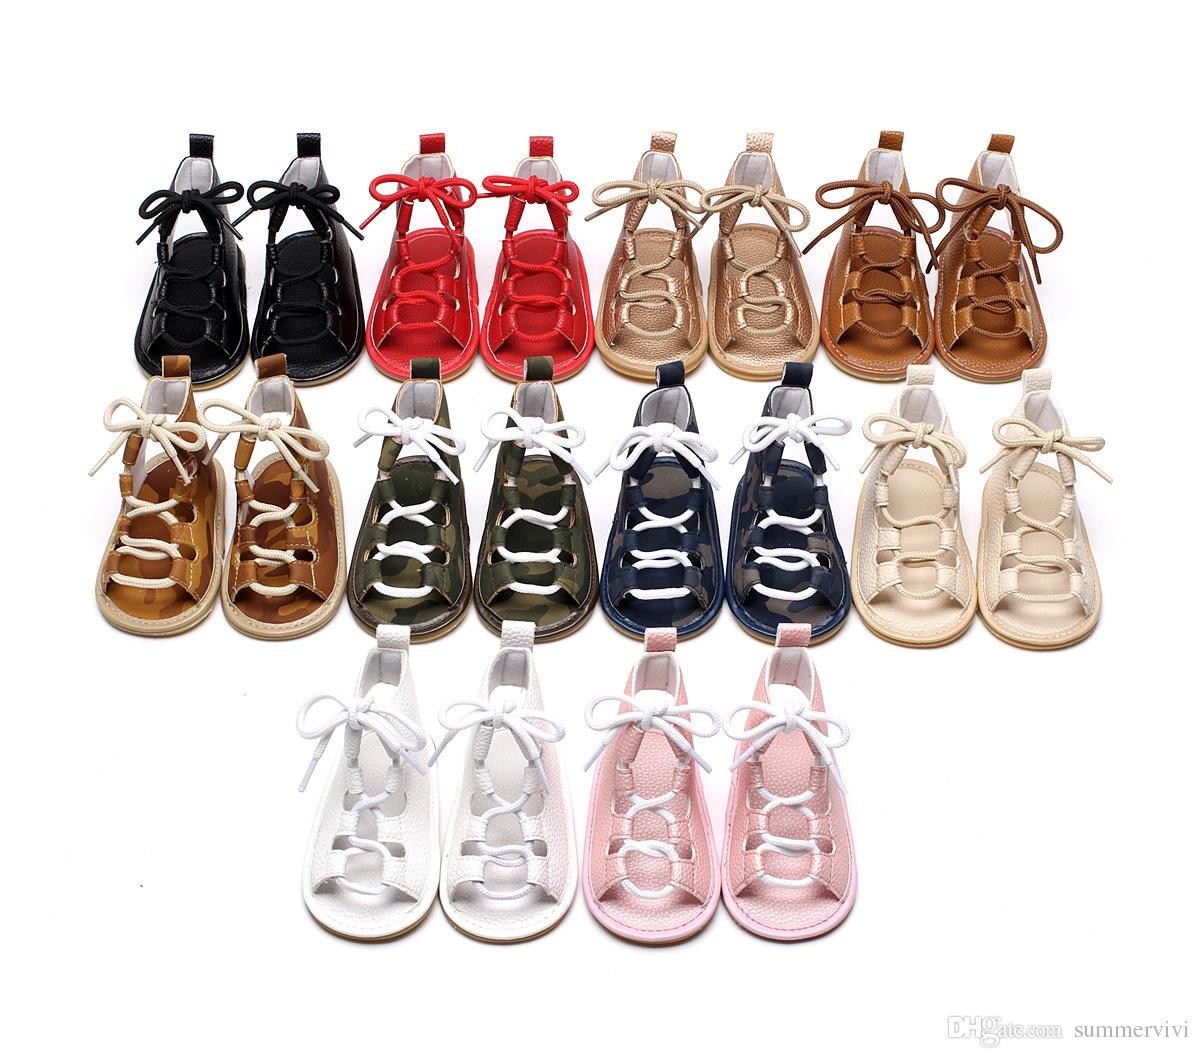 Baby Girls sandals toddler kids flat heels lace-up sandals girls rome sandals baby high gladiator sandal child PU leather shoes A0545